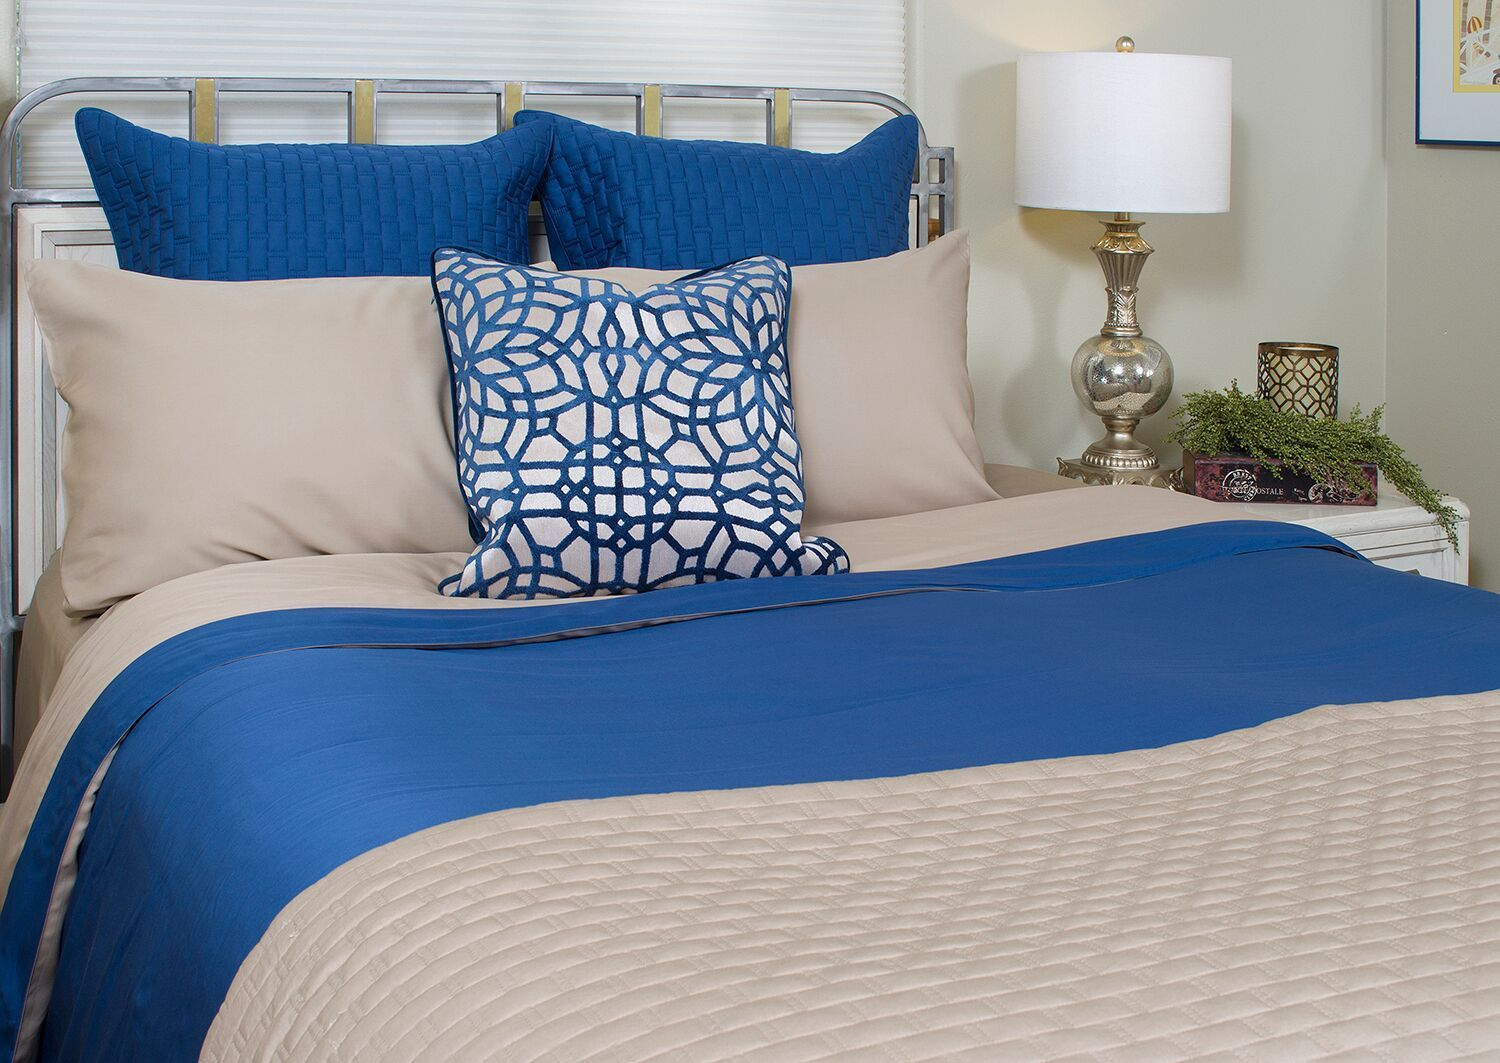 100 Bamboo Bed Sheet Set By Bedvoyage A Great Day Begins With A